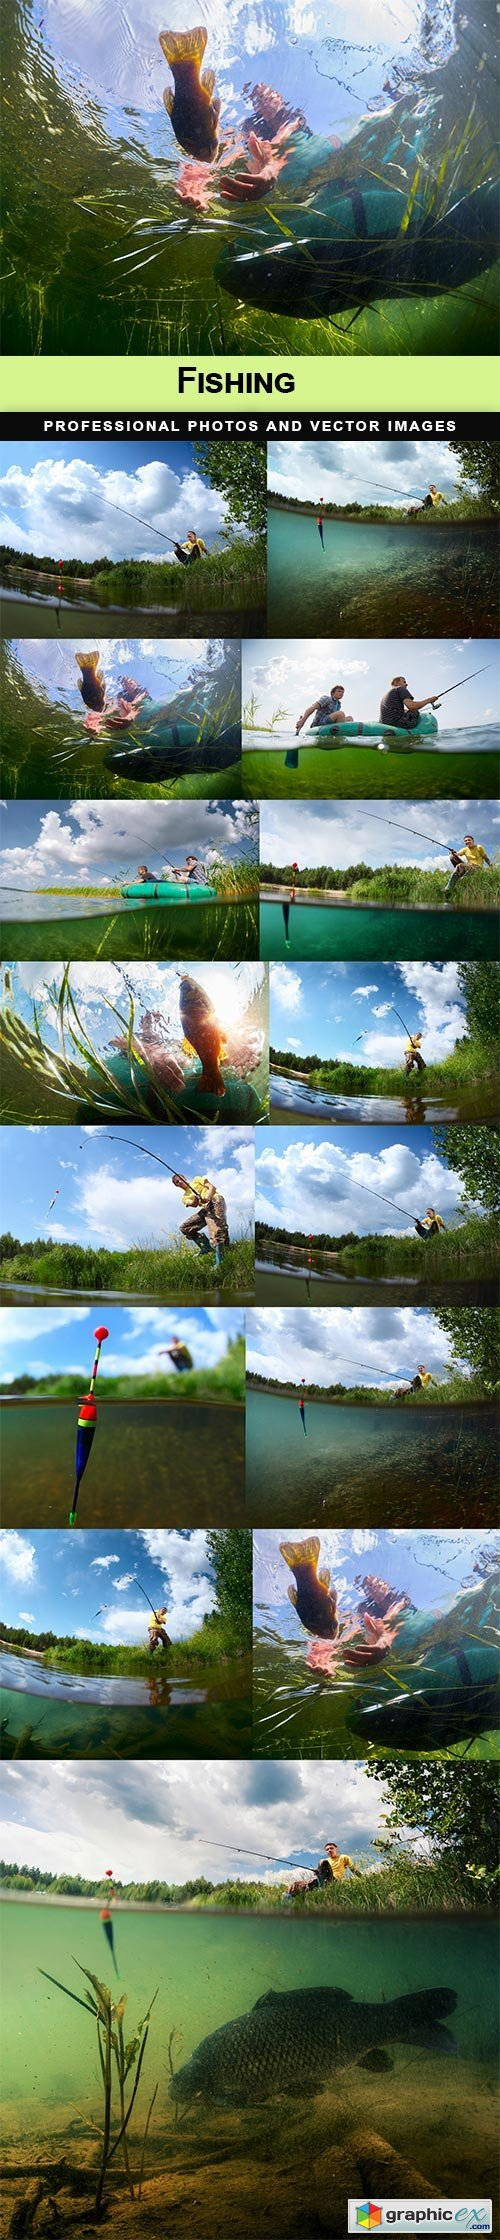 Fishing - 15 UHQ JPEG